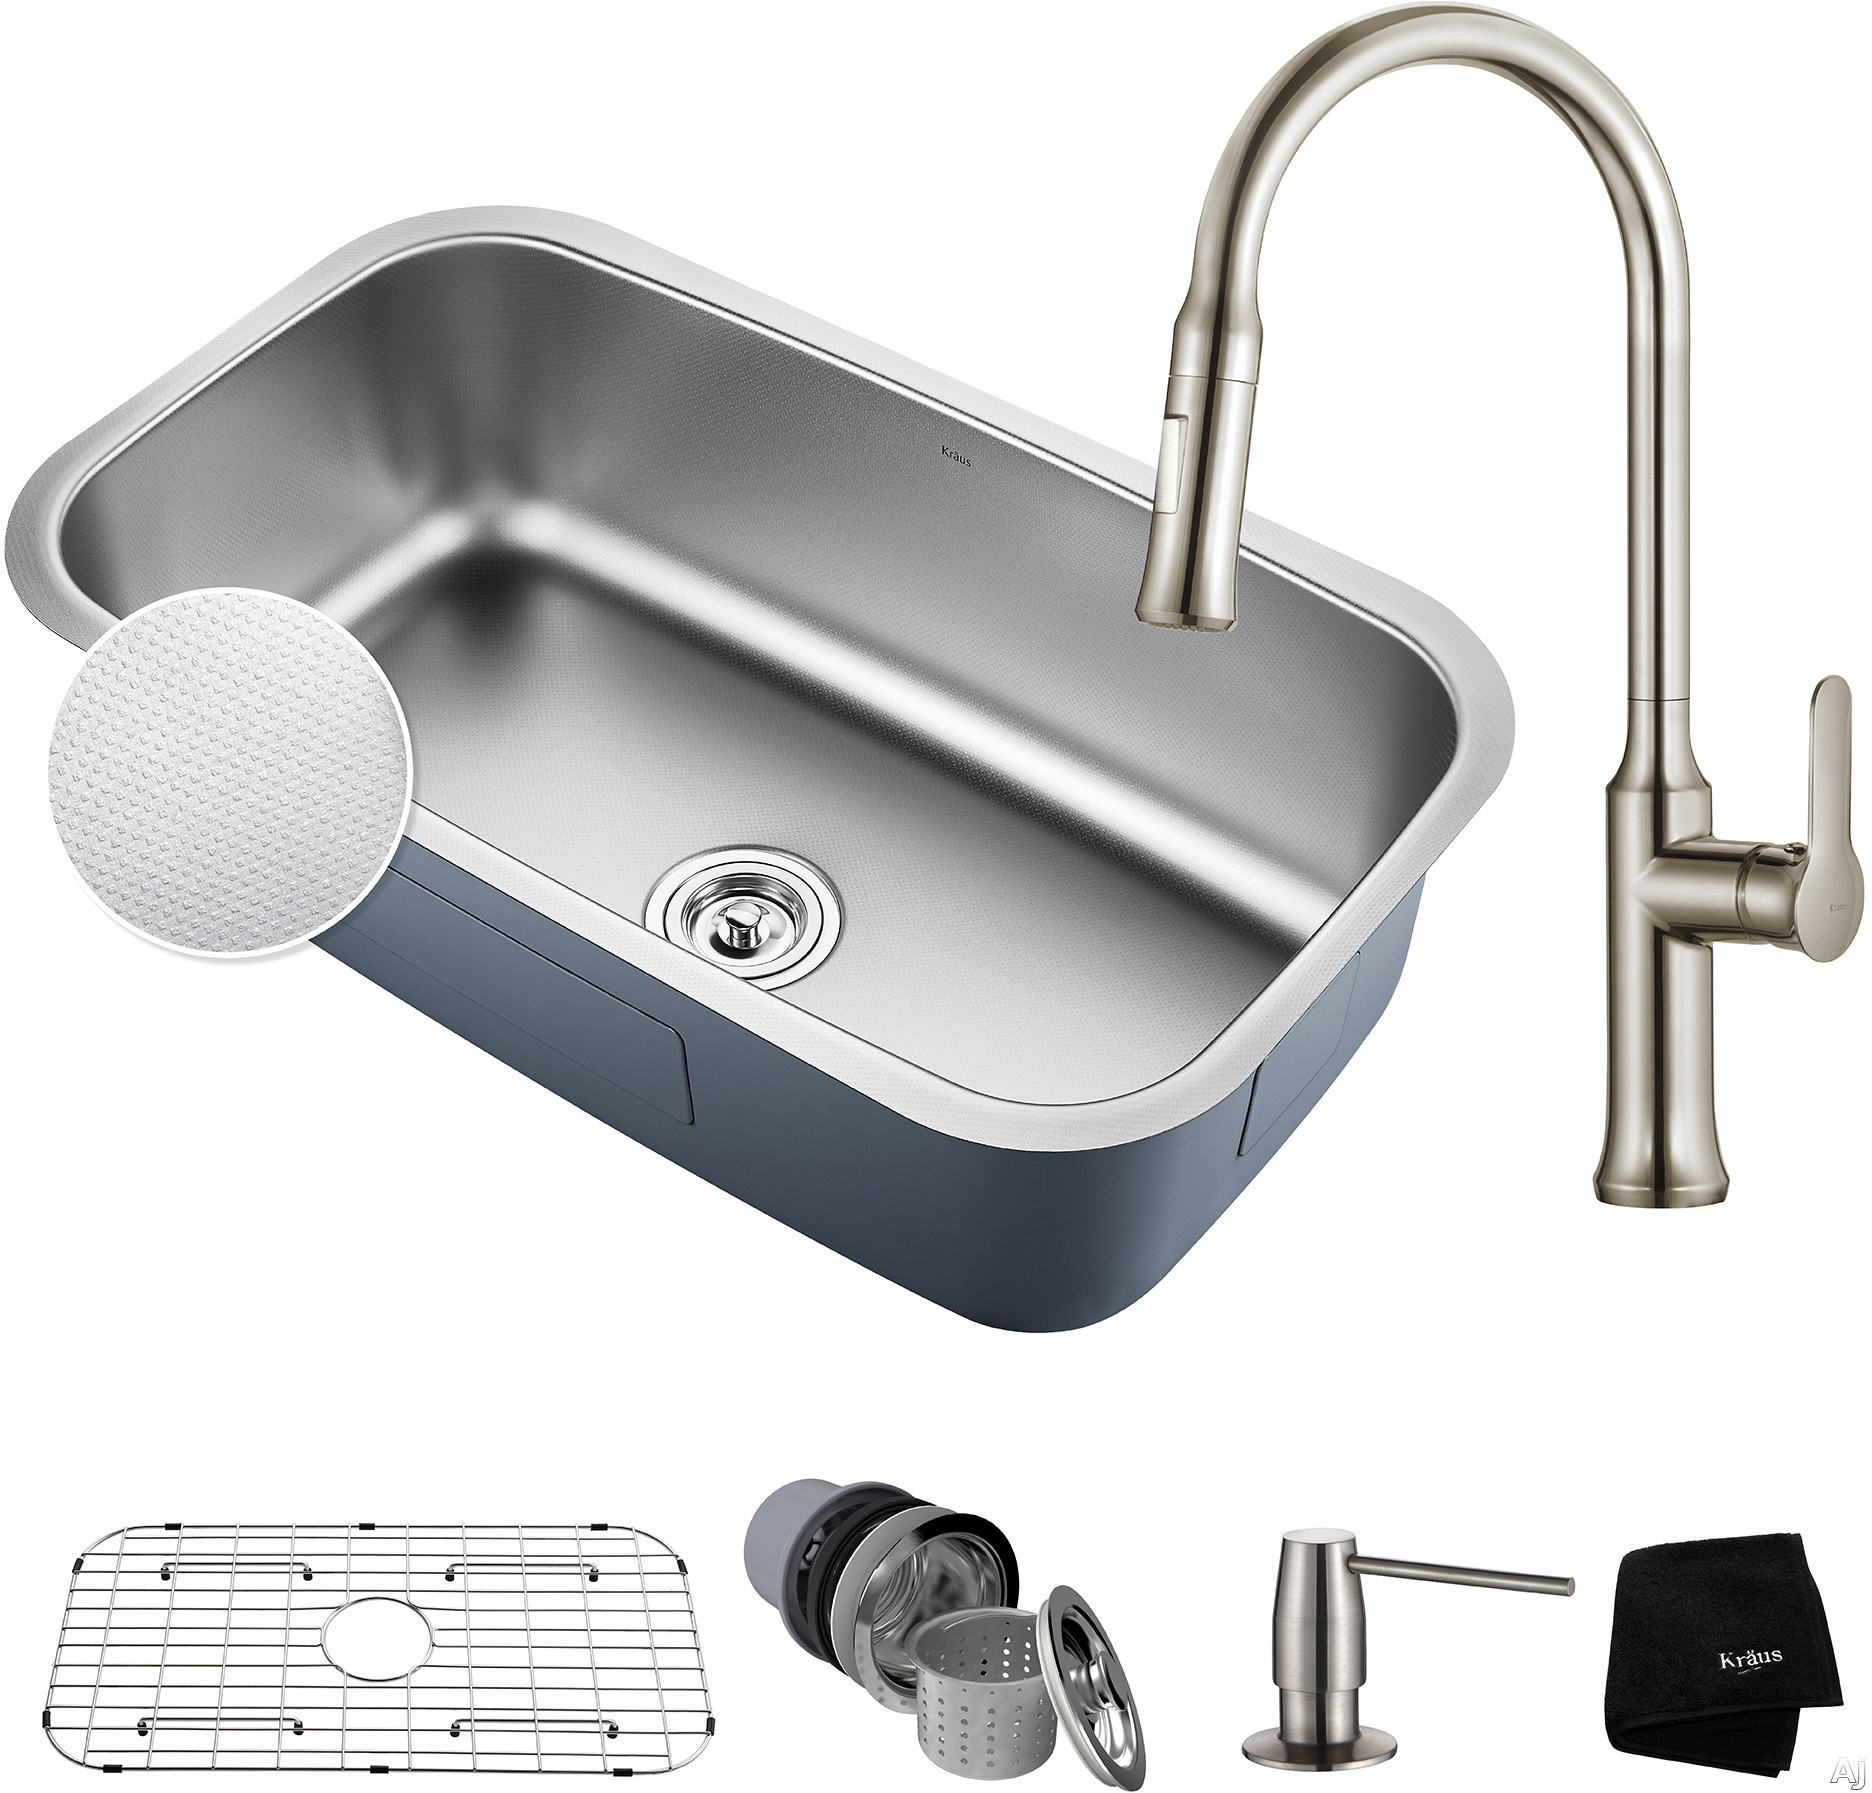 "Kraus Outlast Series KBU14E163042SS 31-1/2 Inch Kitchen Sink and Faucet Combo with Outlast MicroShieldâ""¢, NoiseDefendâ""¢ and 16-Gauge Stainless Steel: Stainless Steel"